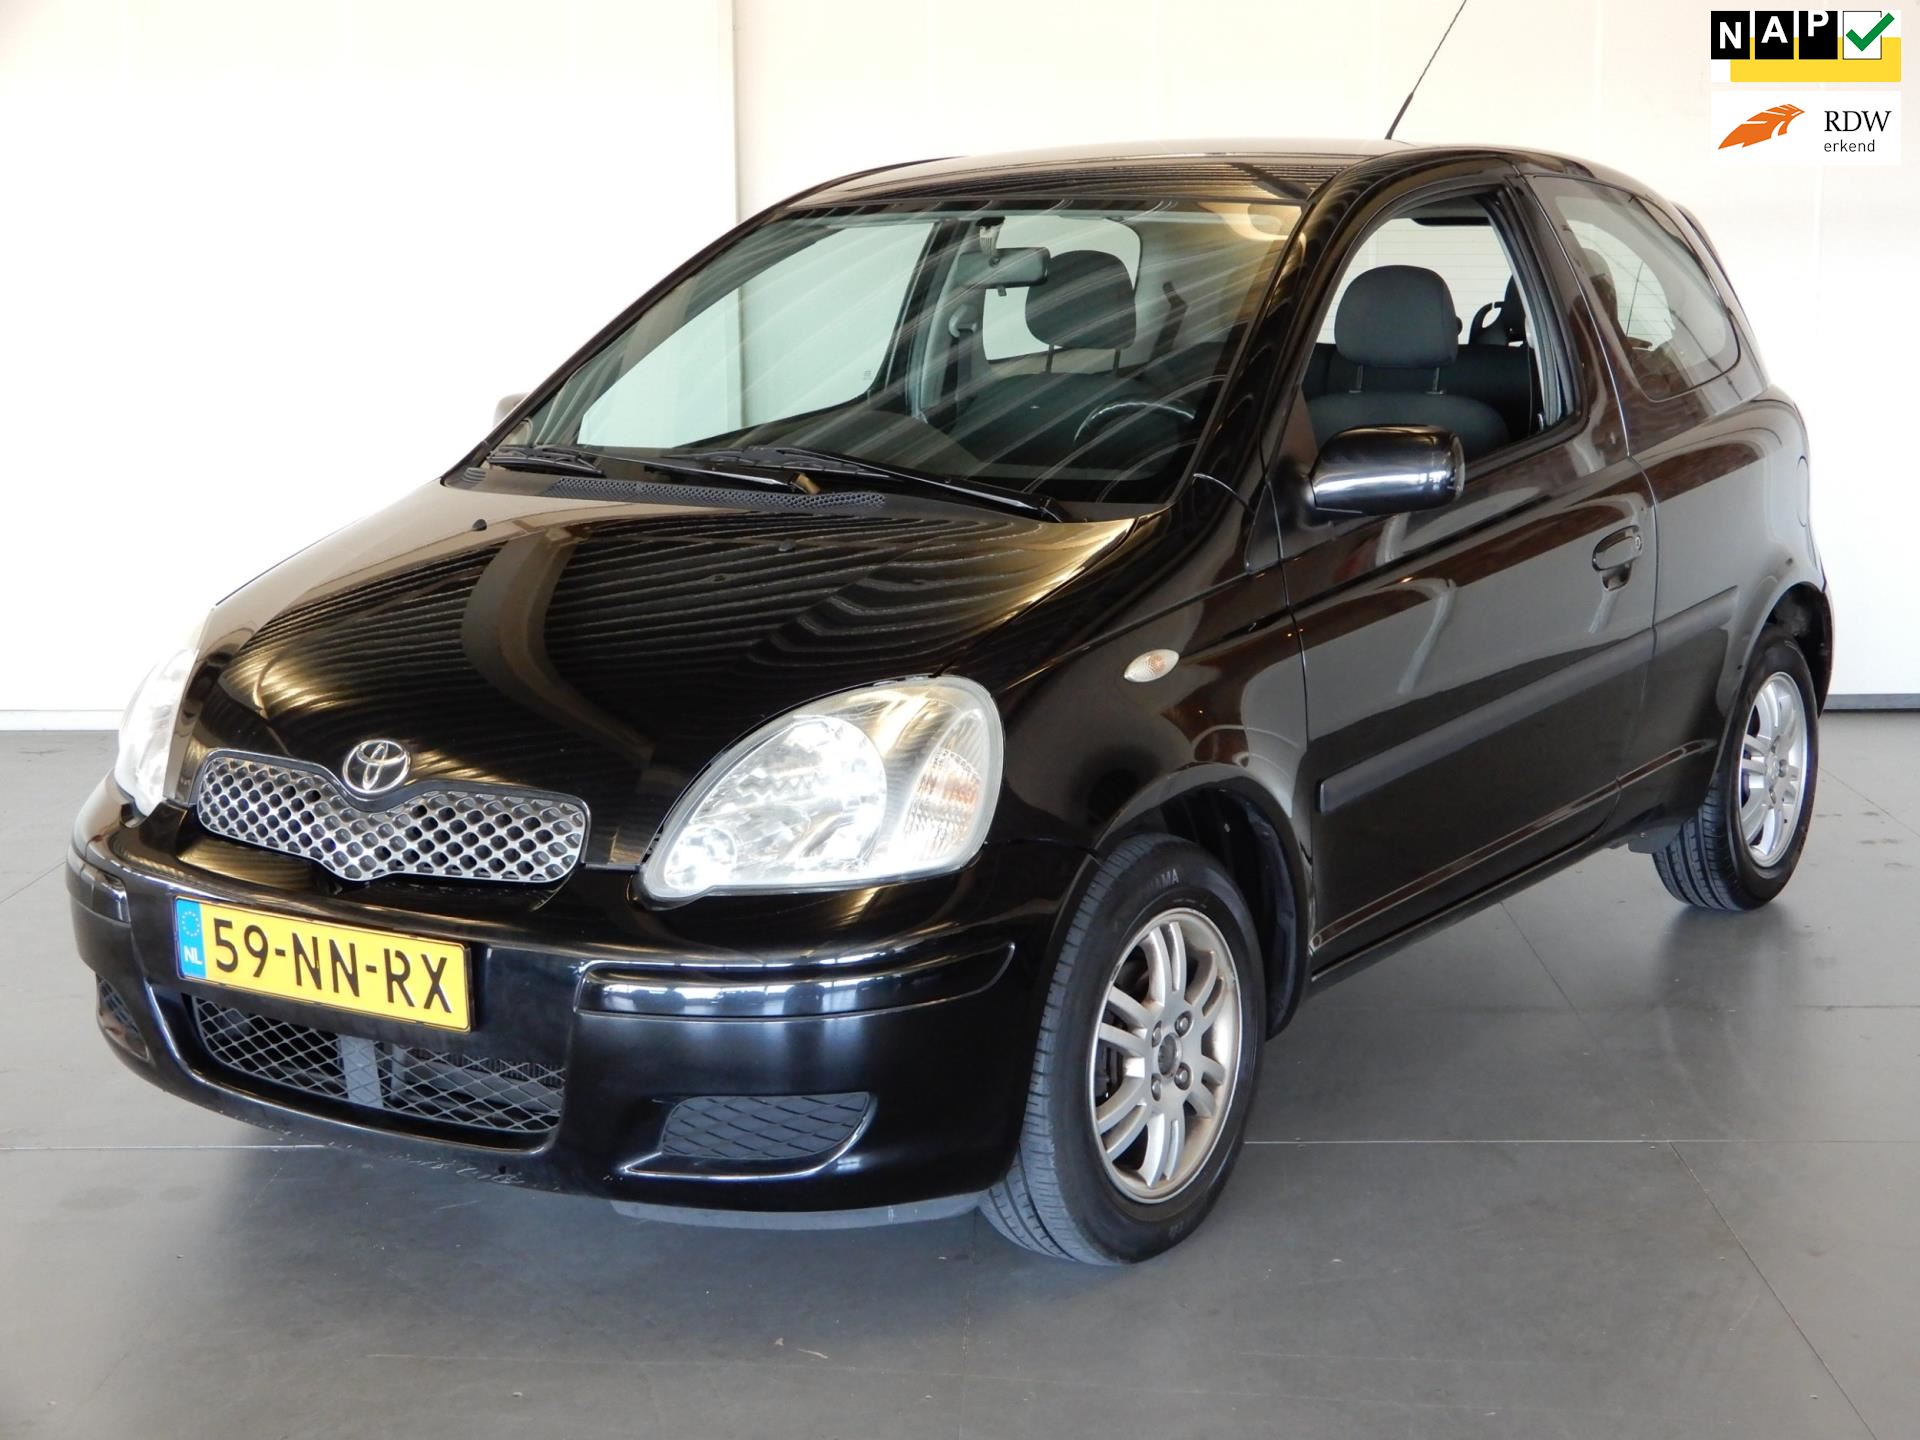 Toyota Yaris occasion - Autohuis Oosterhout